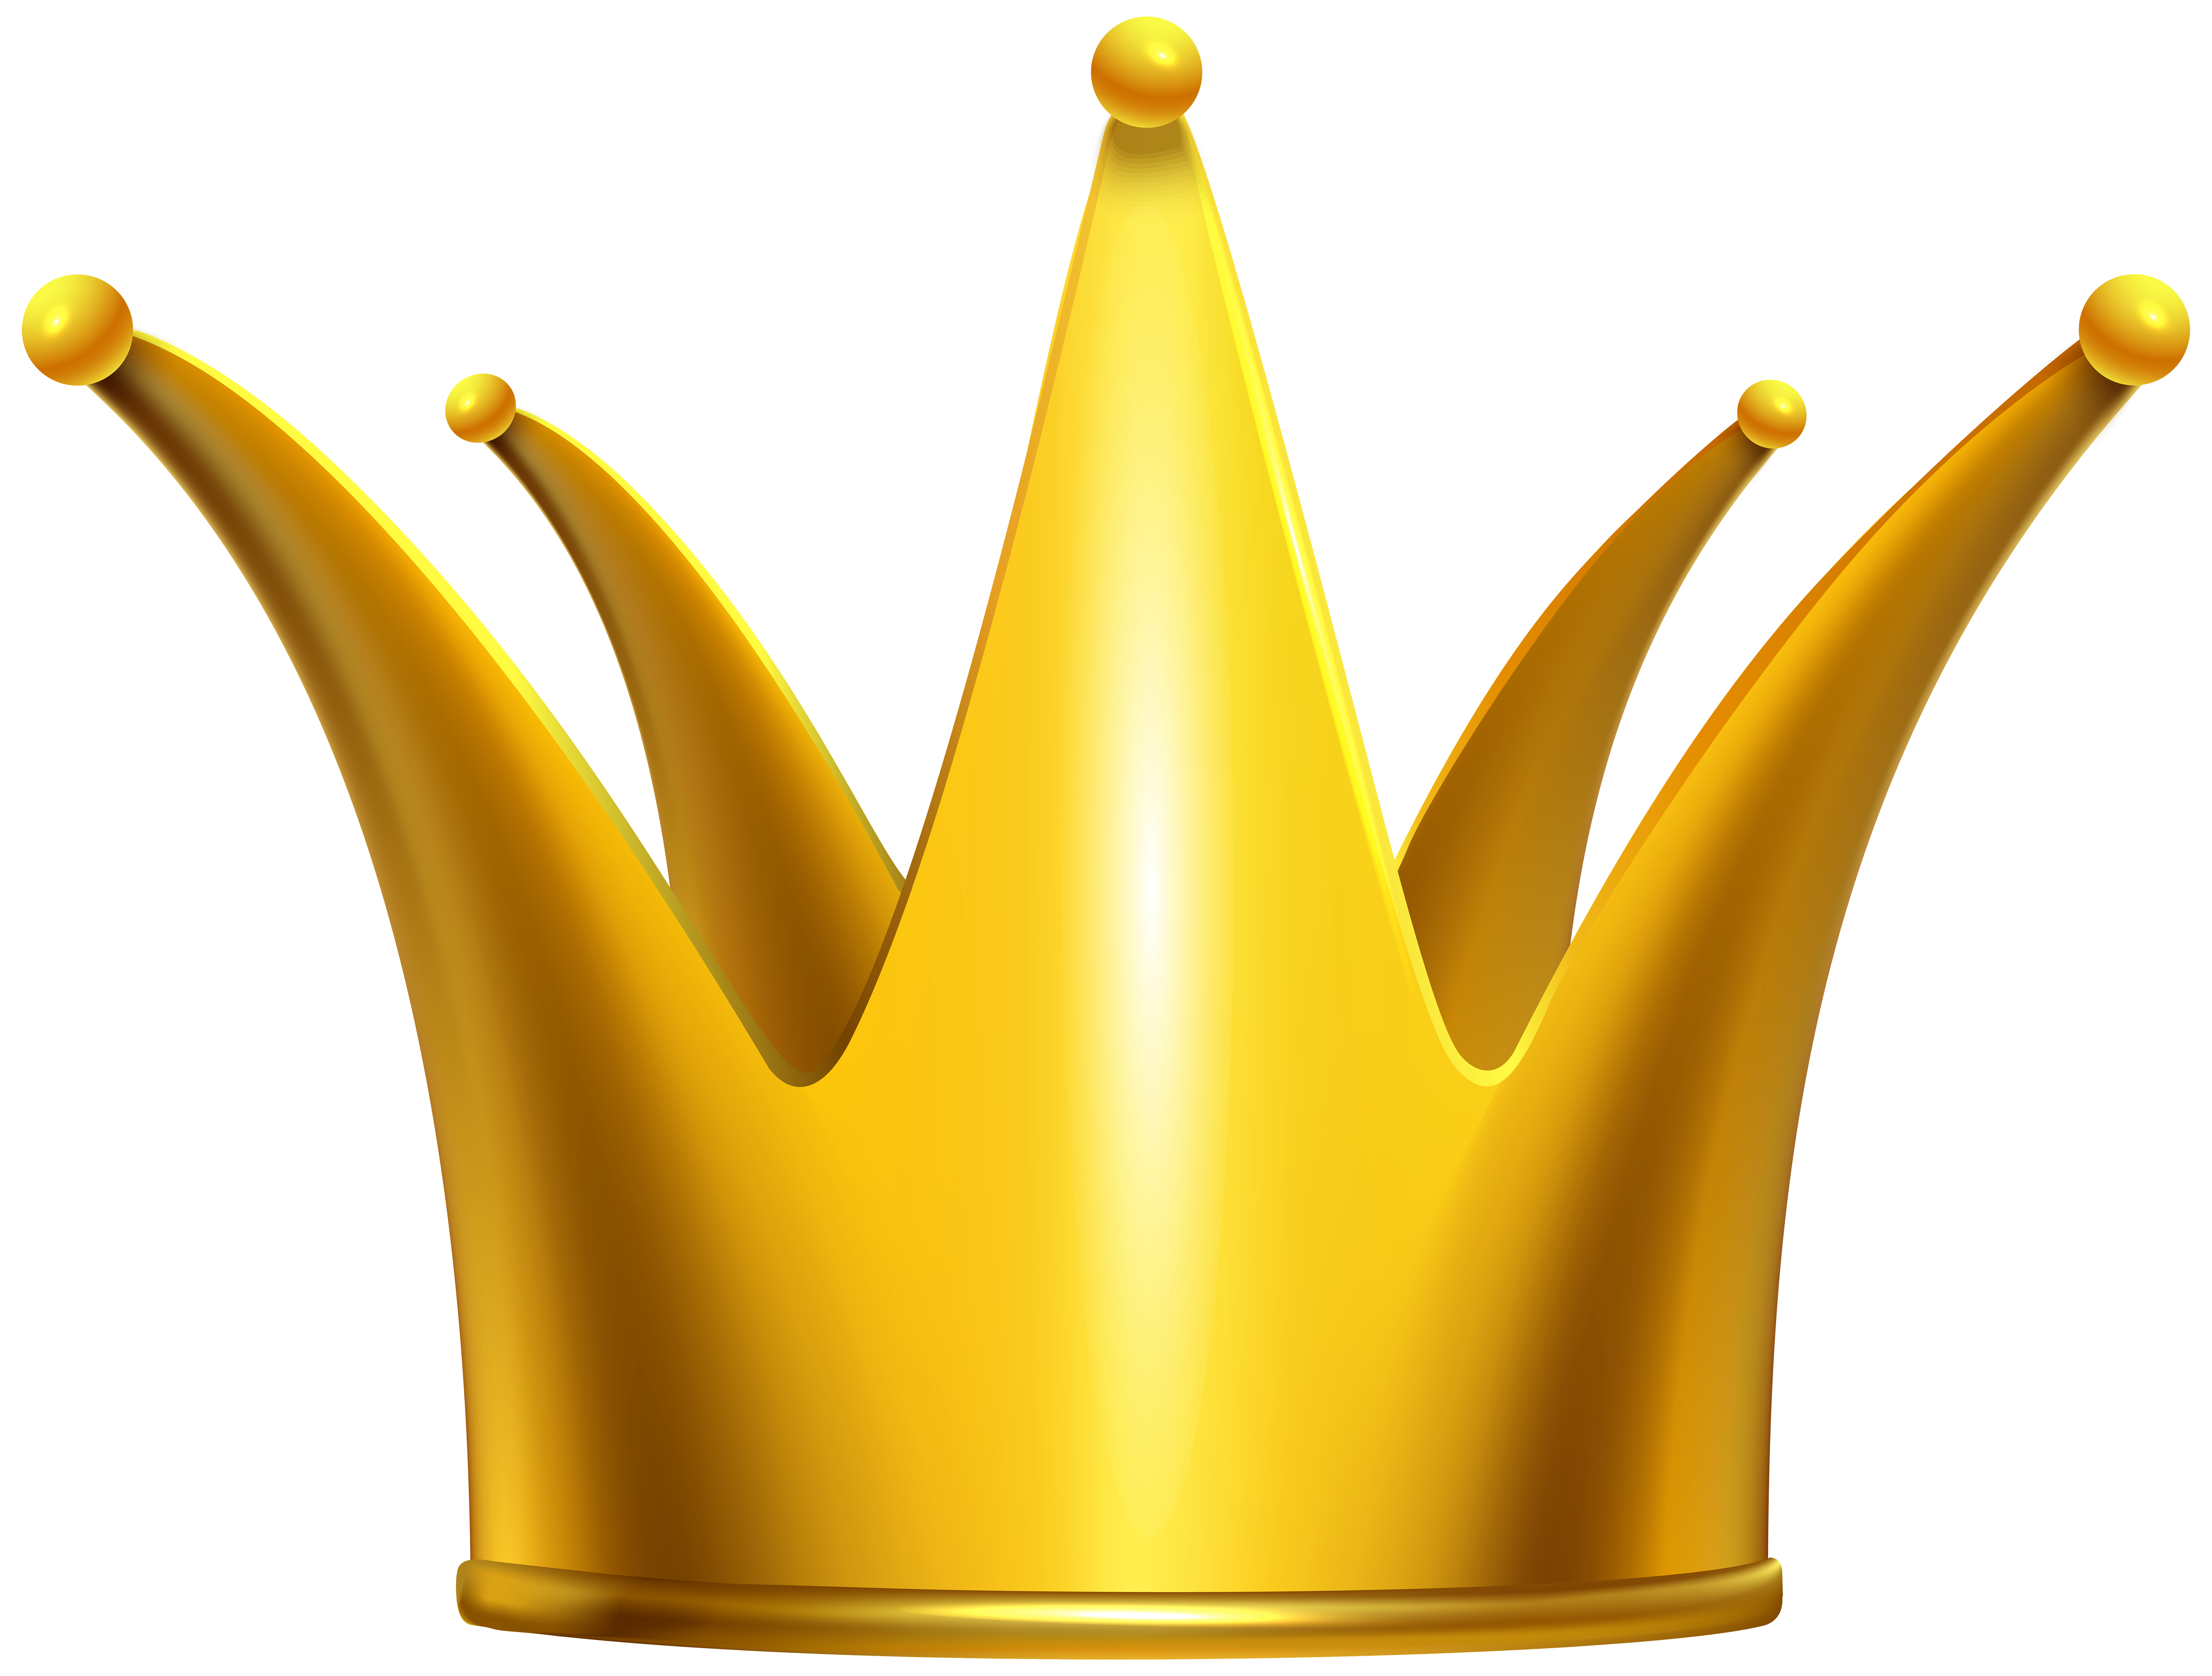 Golden image gallery yopriceville. Crown clip art png banner transparent library